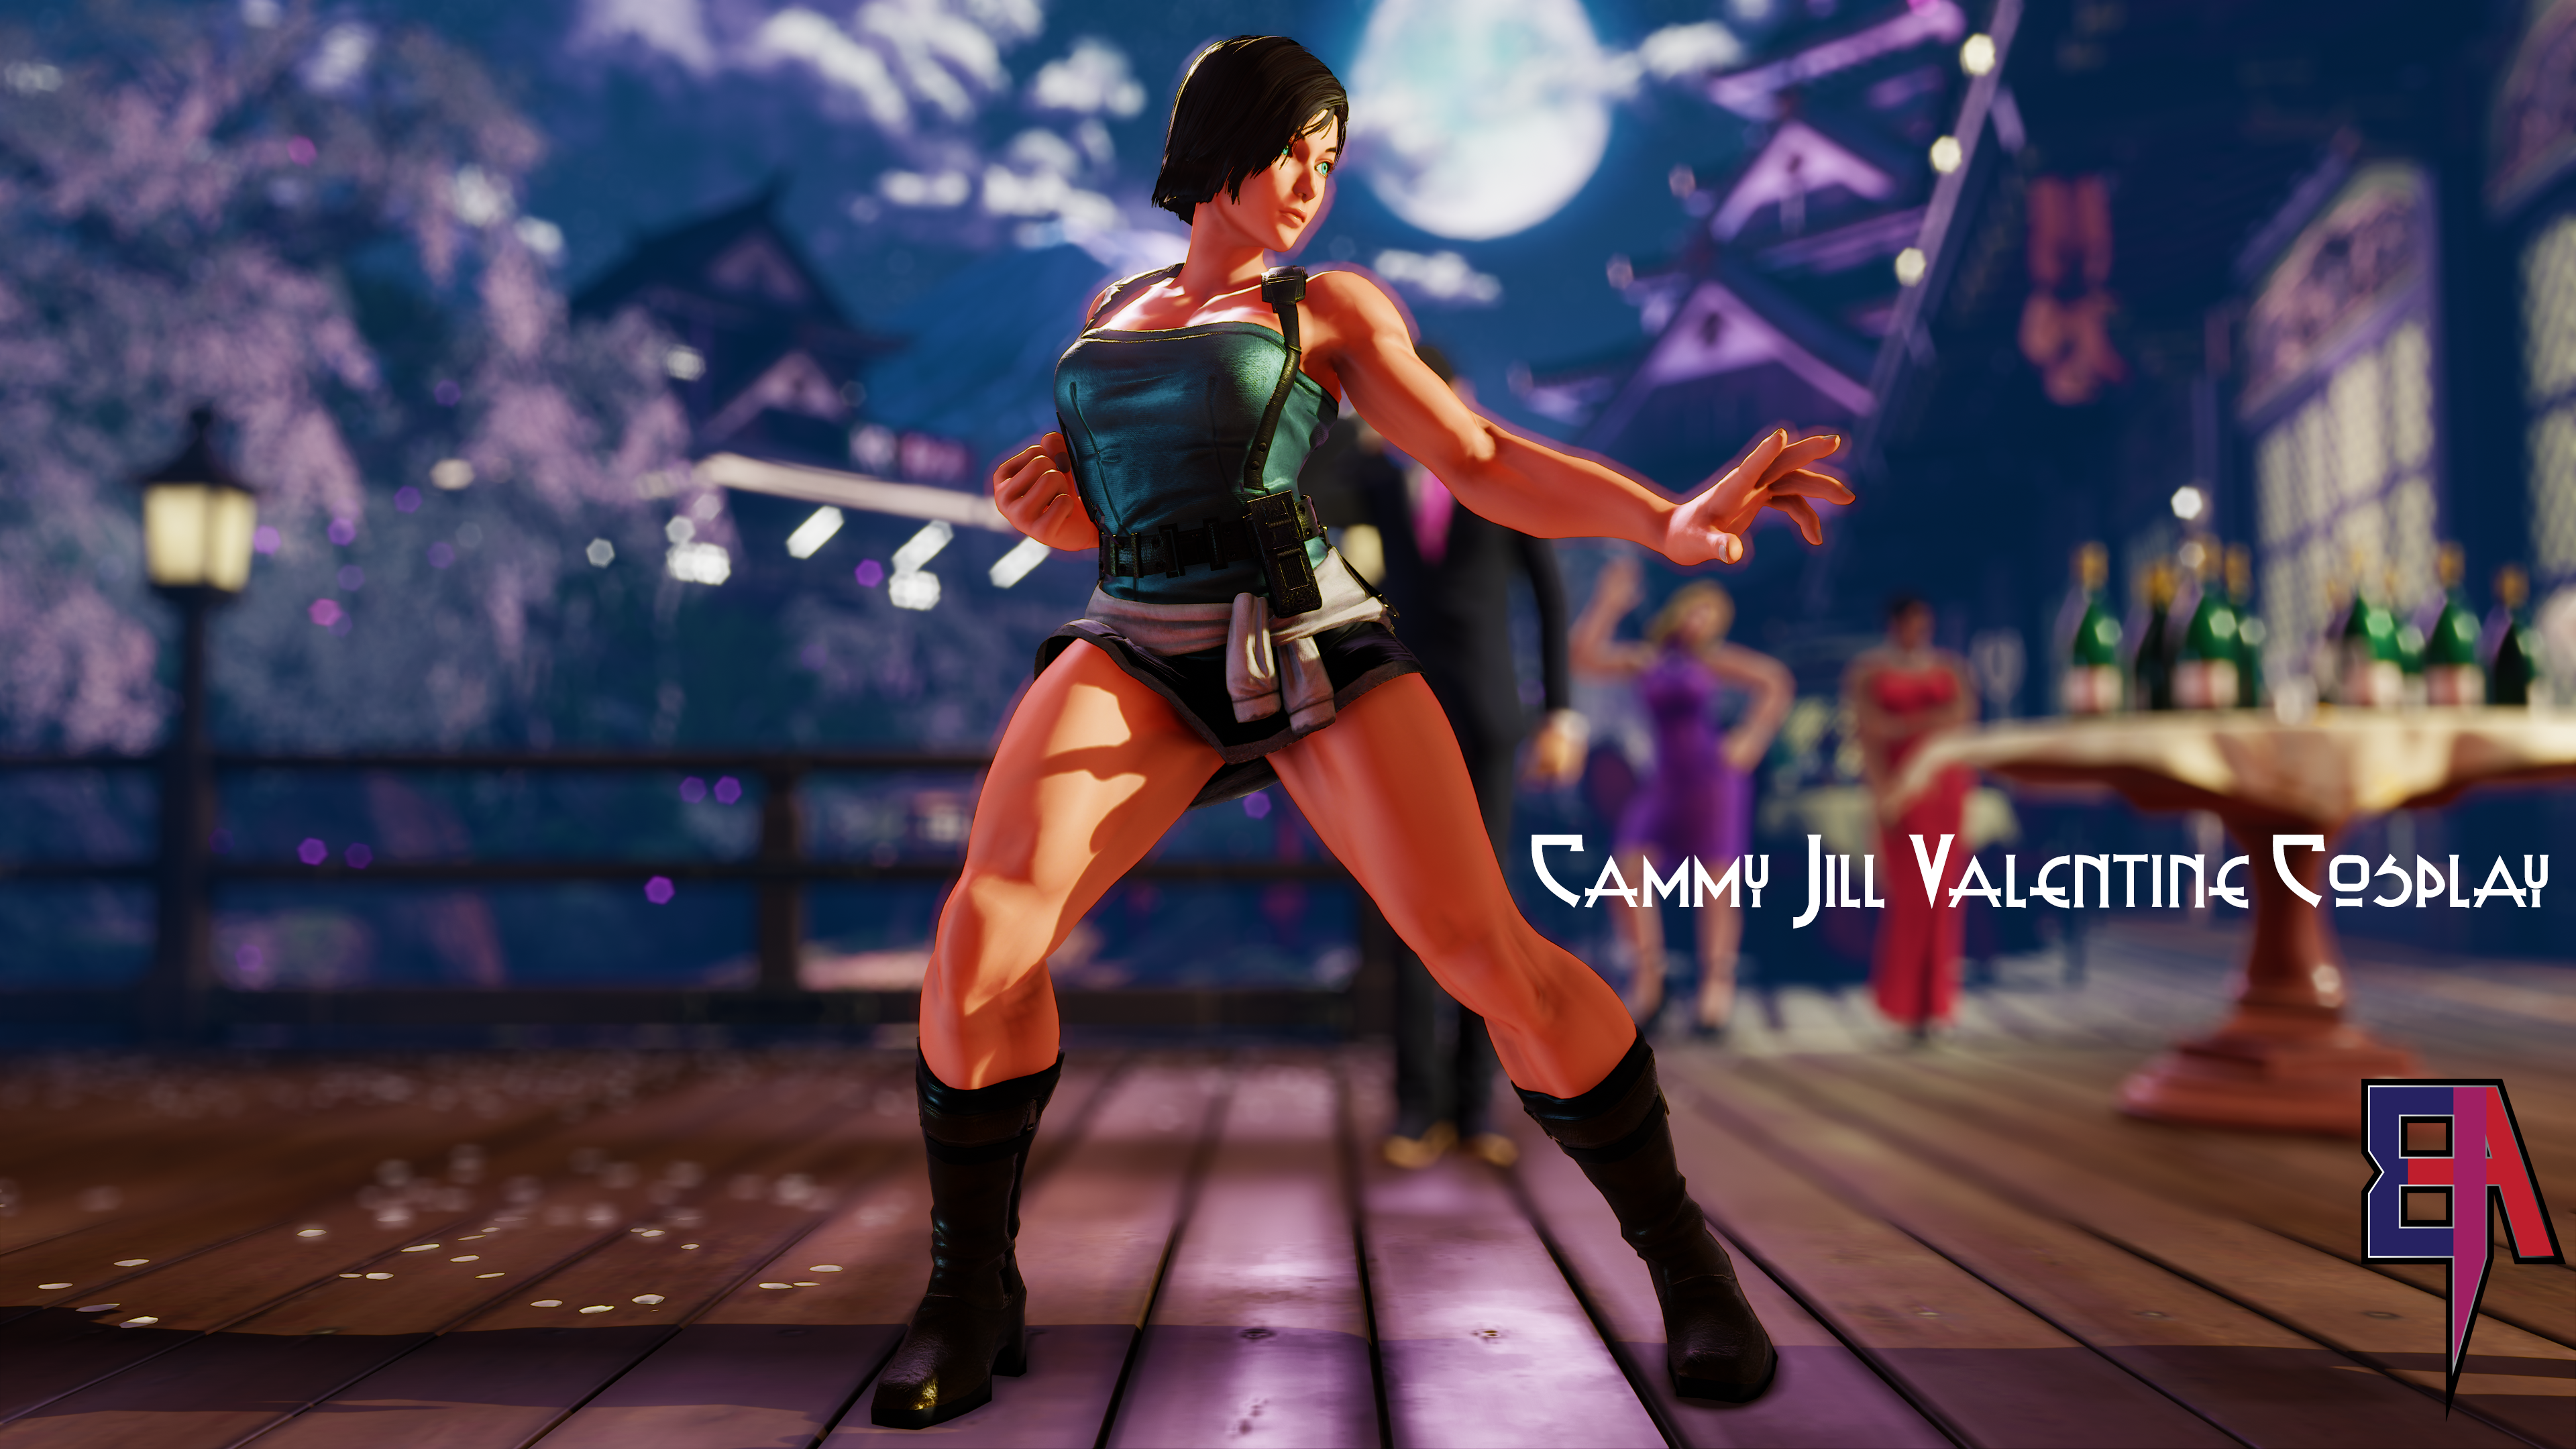 [Image: cammy_jill_valentine_cosplay_by_brutalace-dbhkwuq.png]